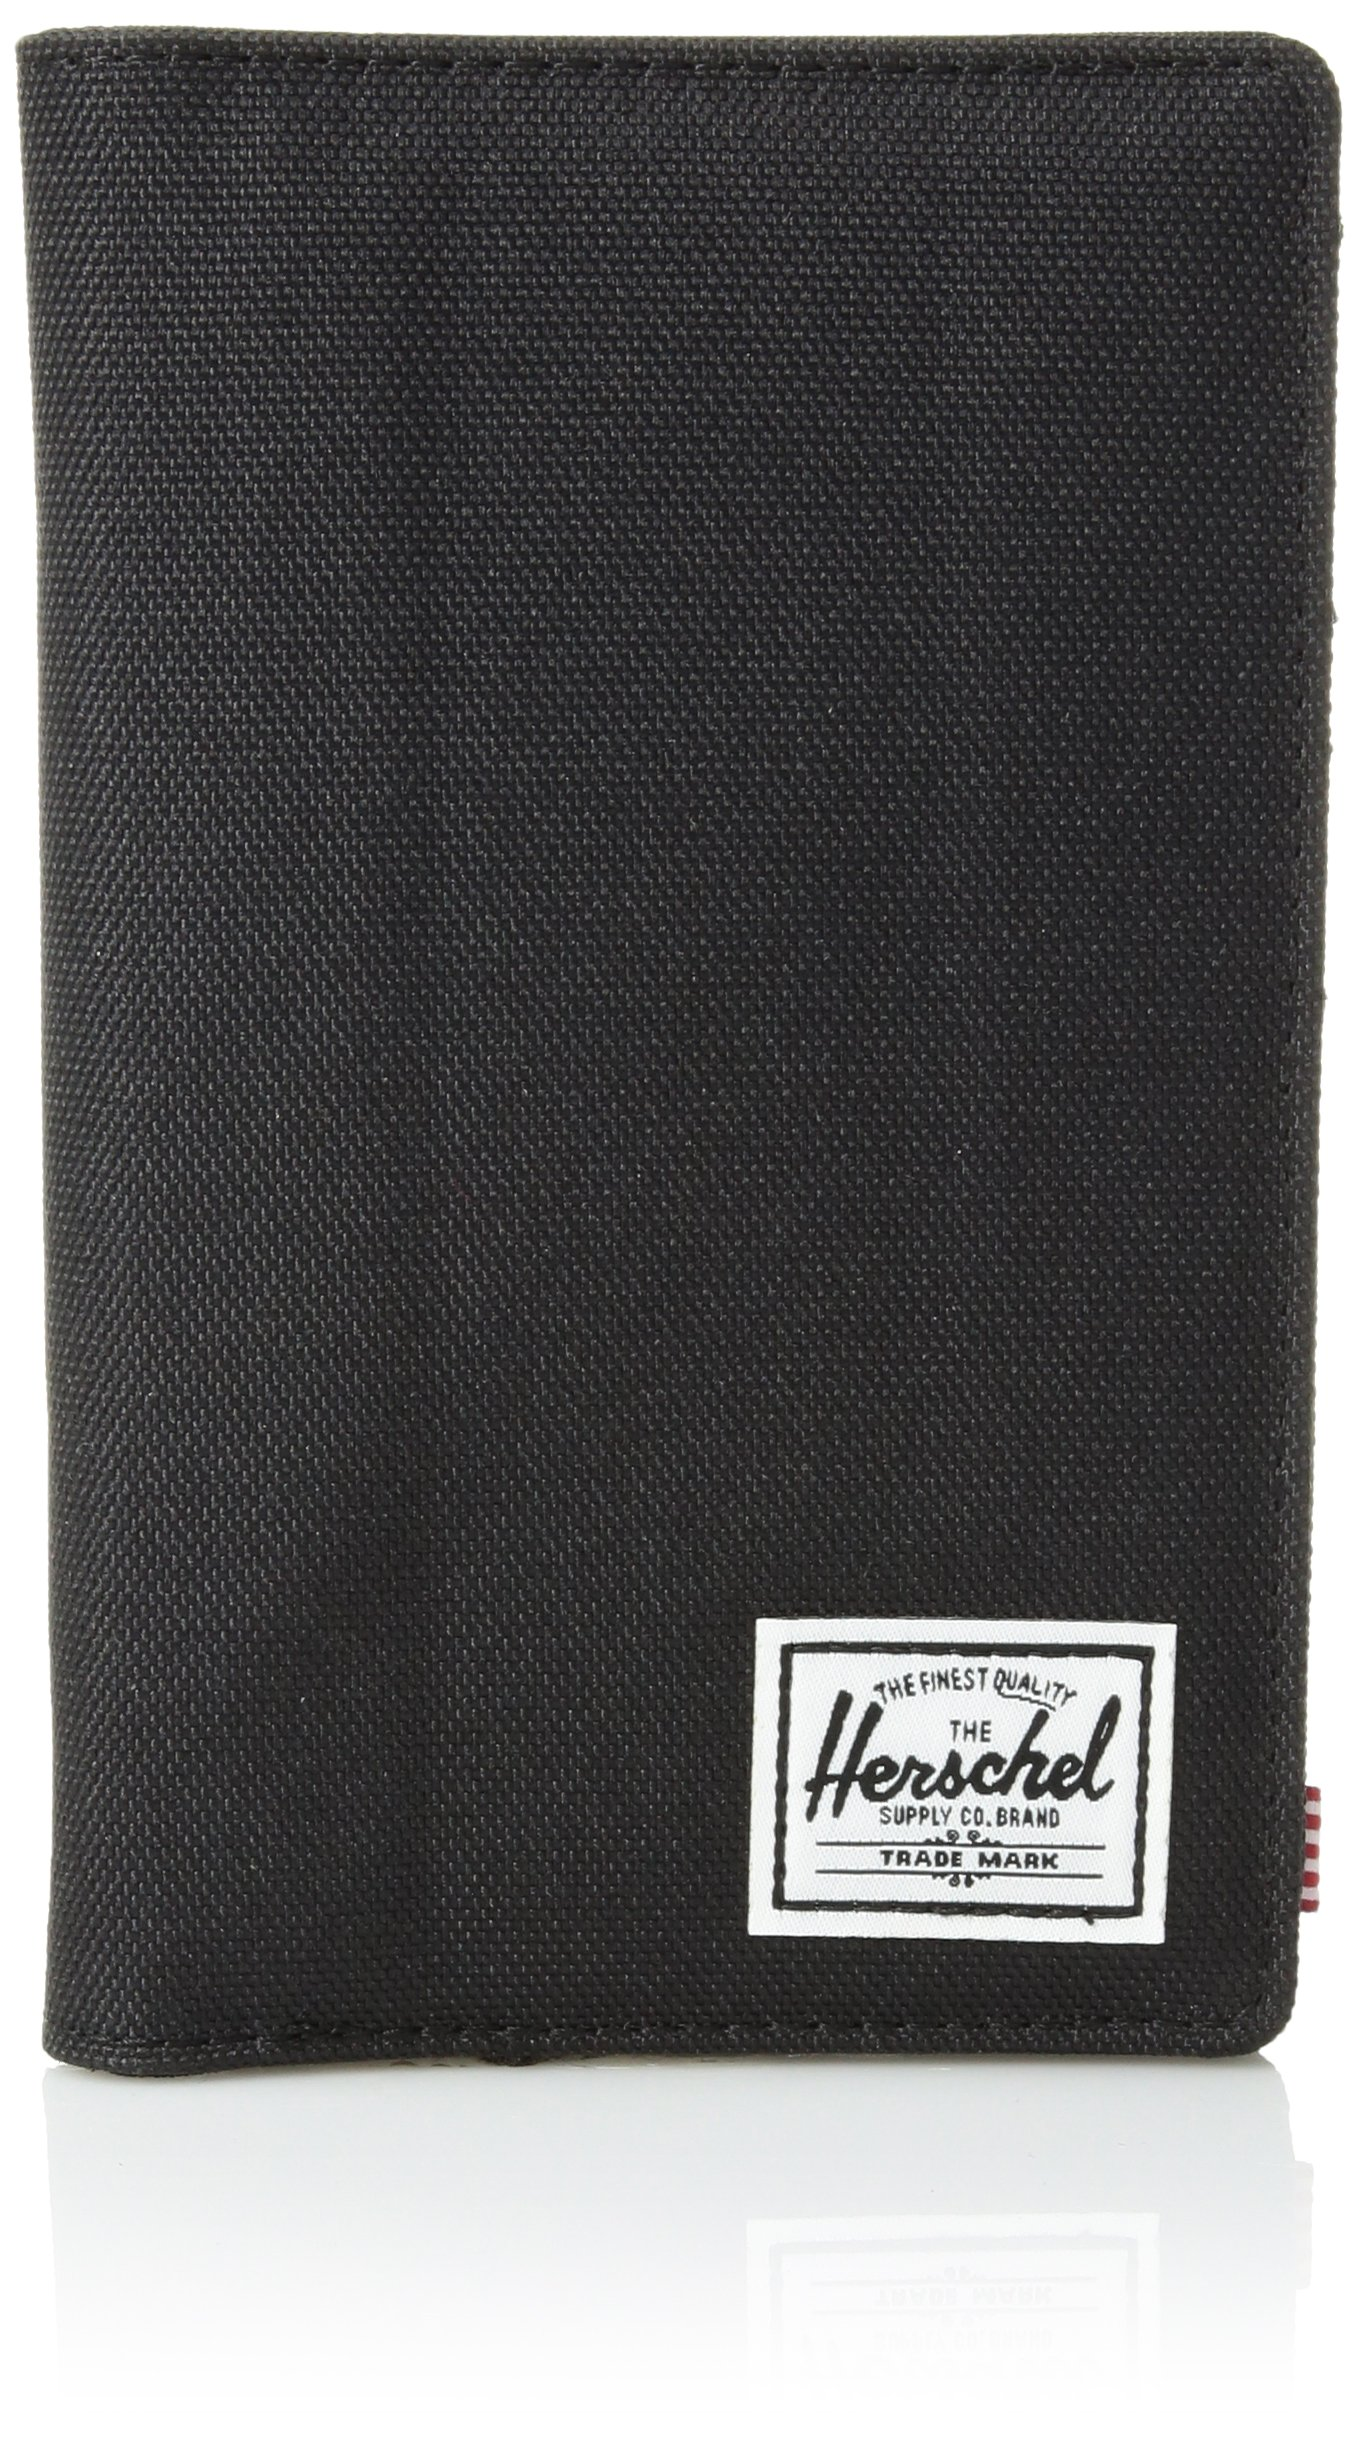 Herschel Search RFID Passport Holder, black, One Size by Herschel